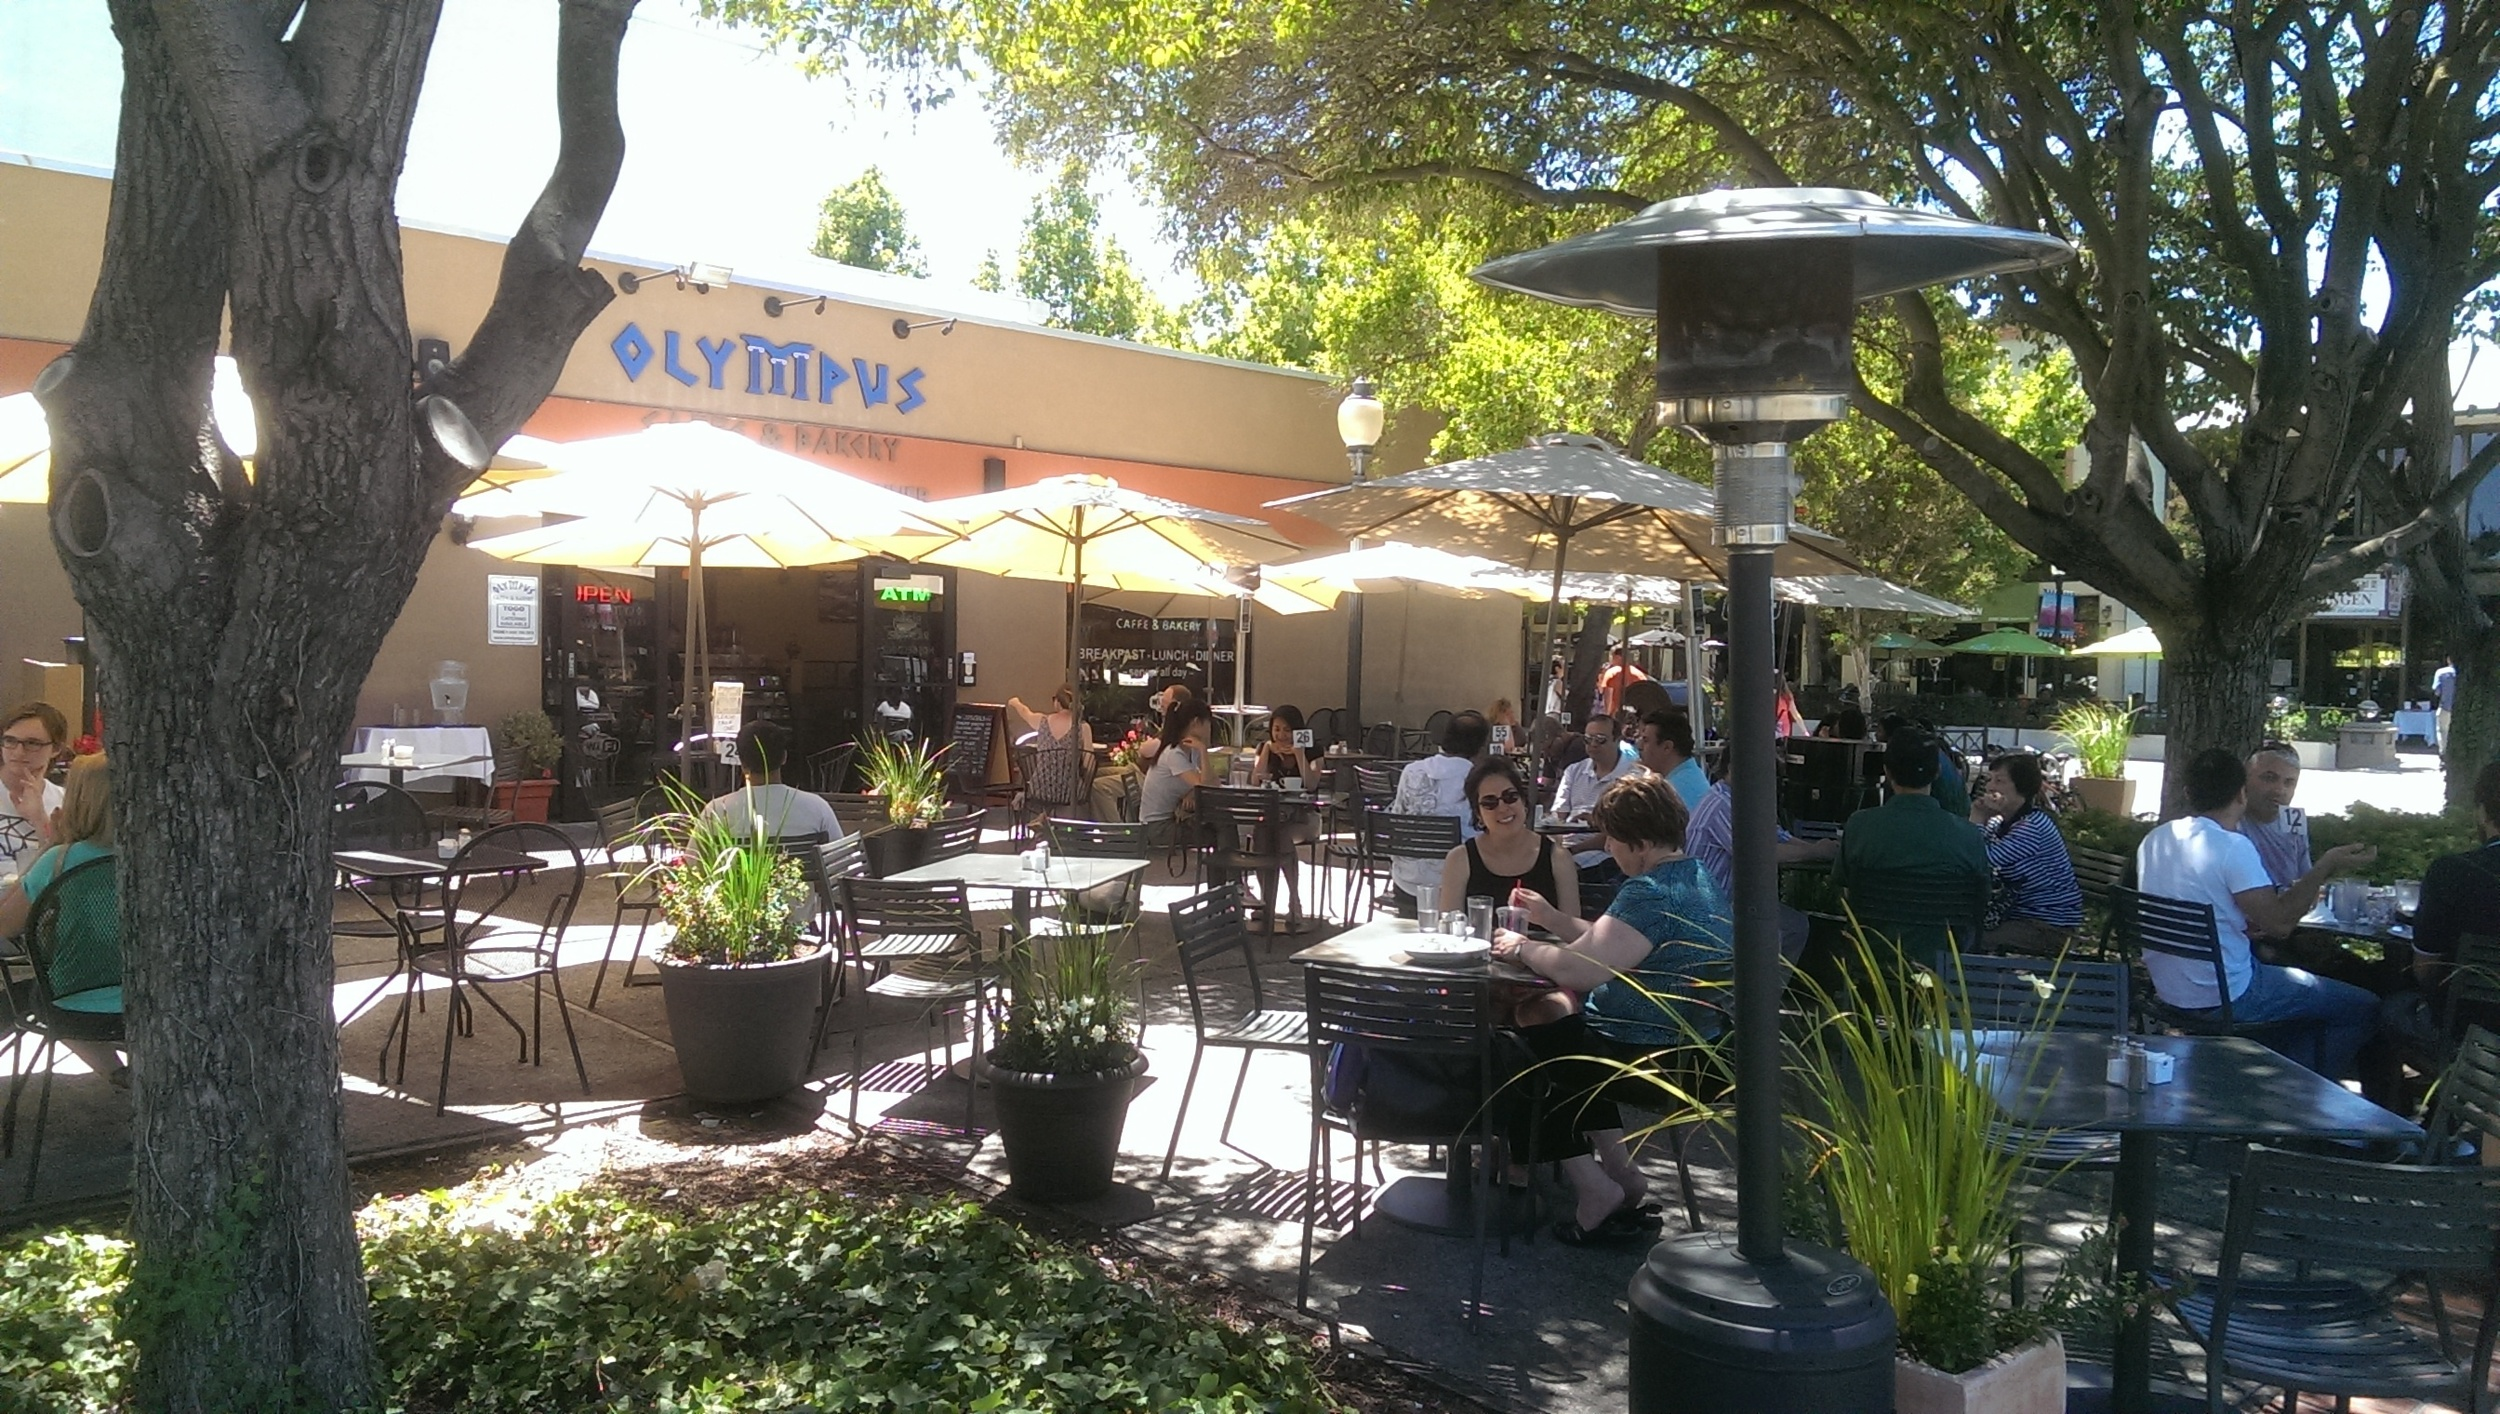 "The patio at the Olympus Cafe, just across the street from Mountain View's train station, one of many reasons my town should be more than a ""transfer point"" for Super Bowl 50 fans."